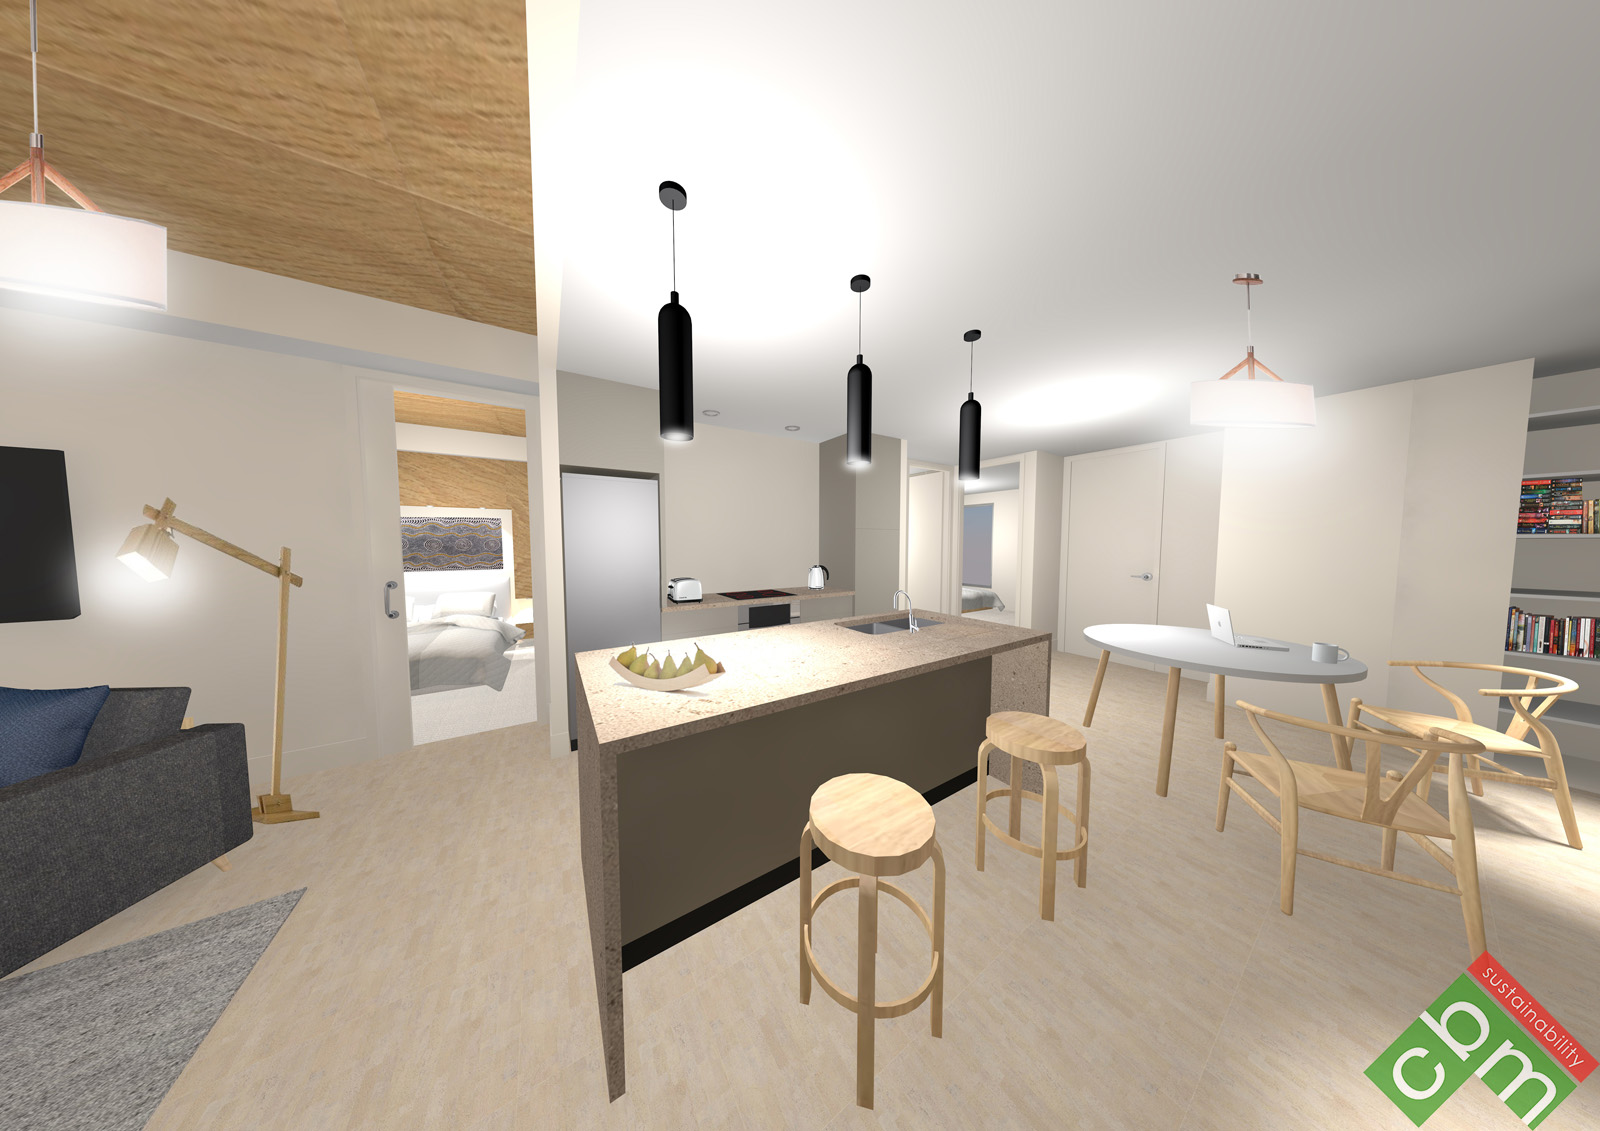 T2 Apartment Type 2 - Kitchen and Living 2.JPG